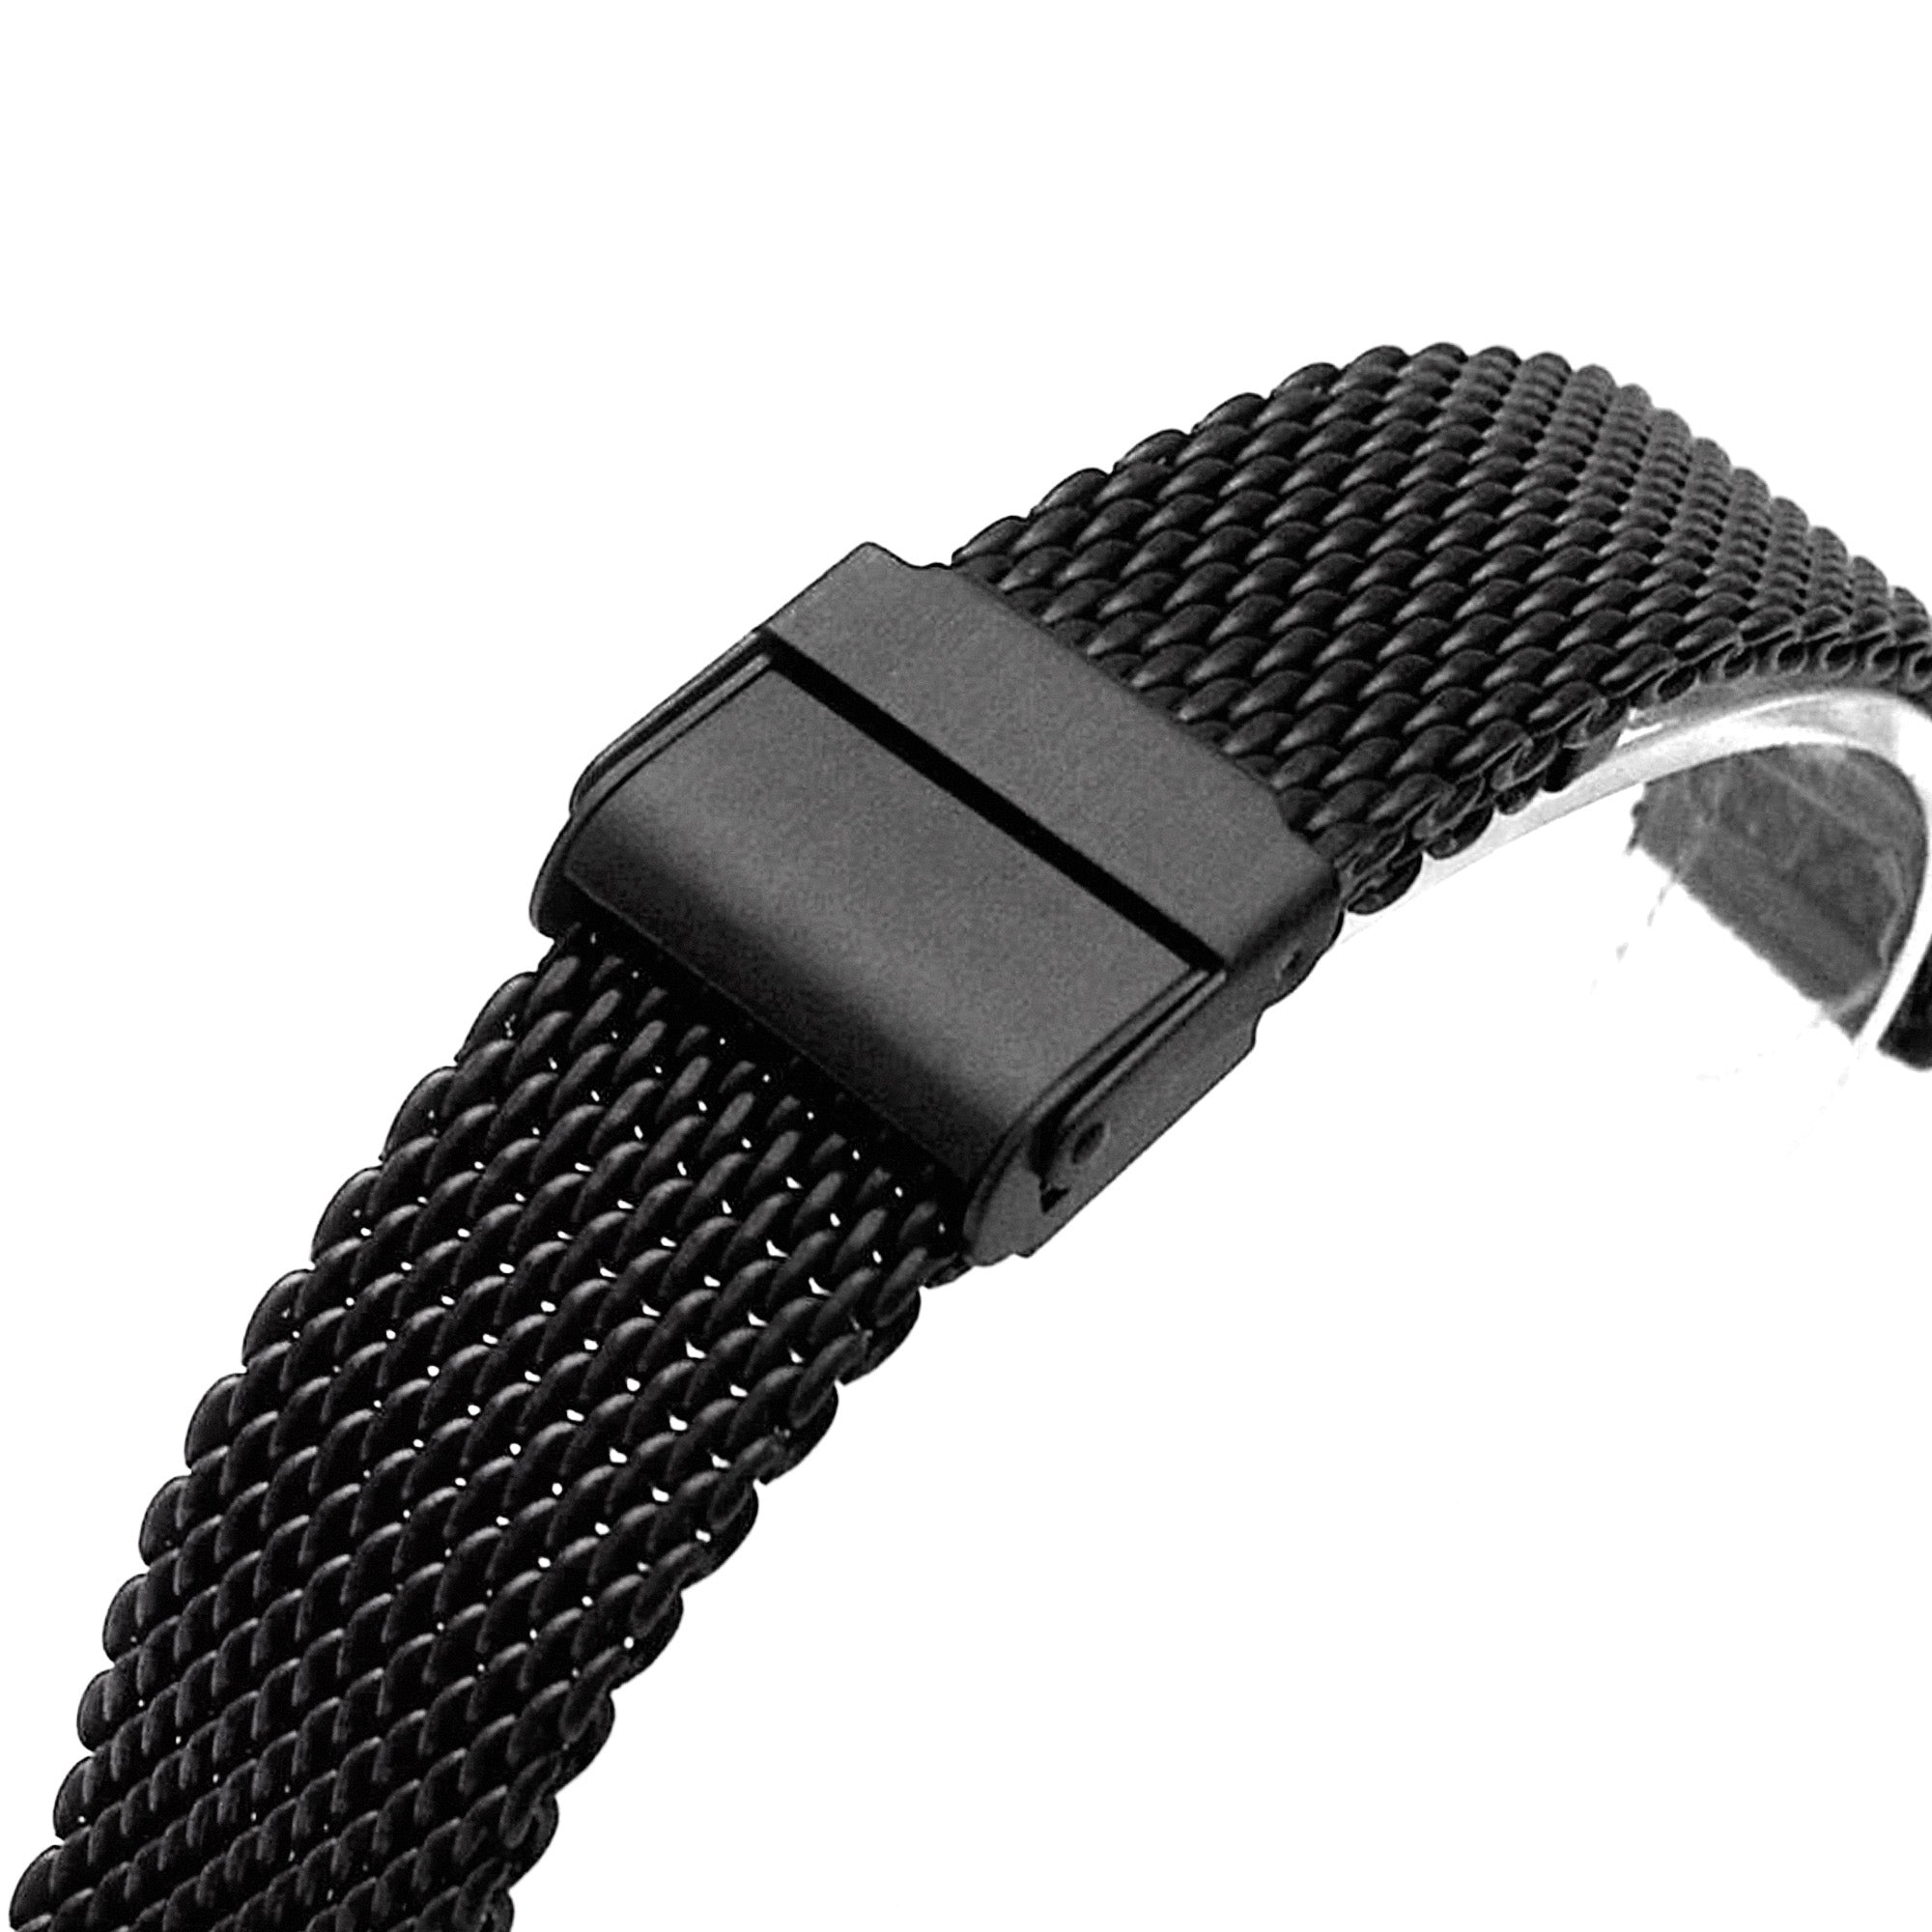 18mm, 20mm Interlocking Matte Black Mesh Divers Watch Band Bracelet